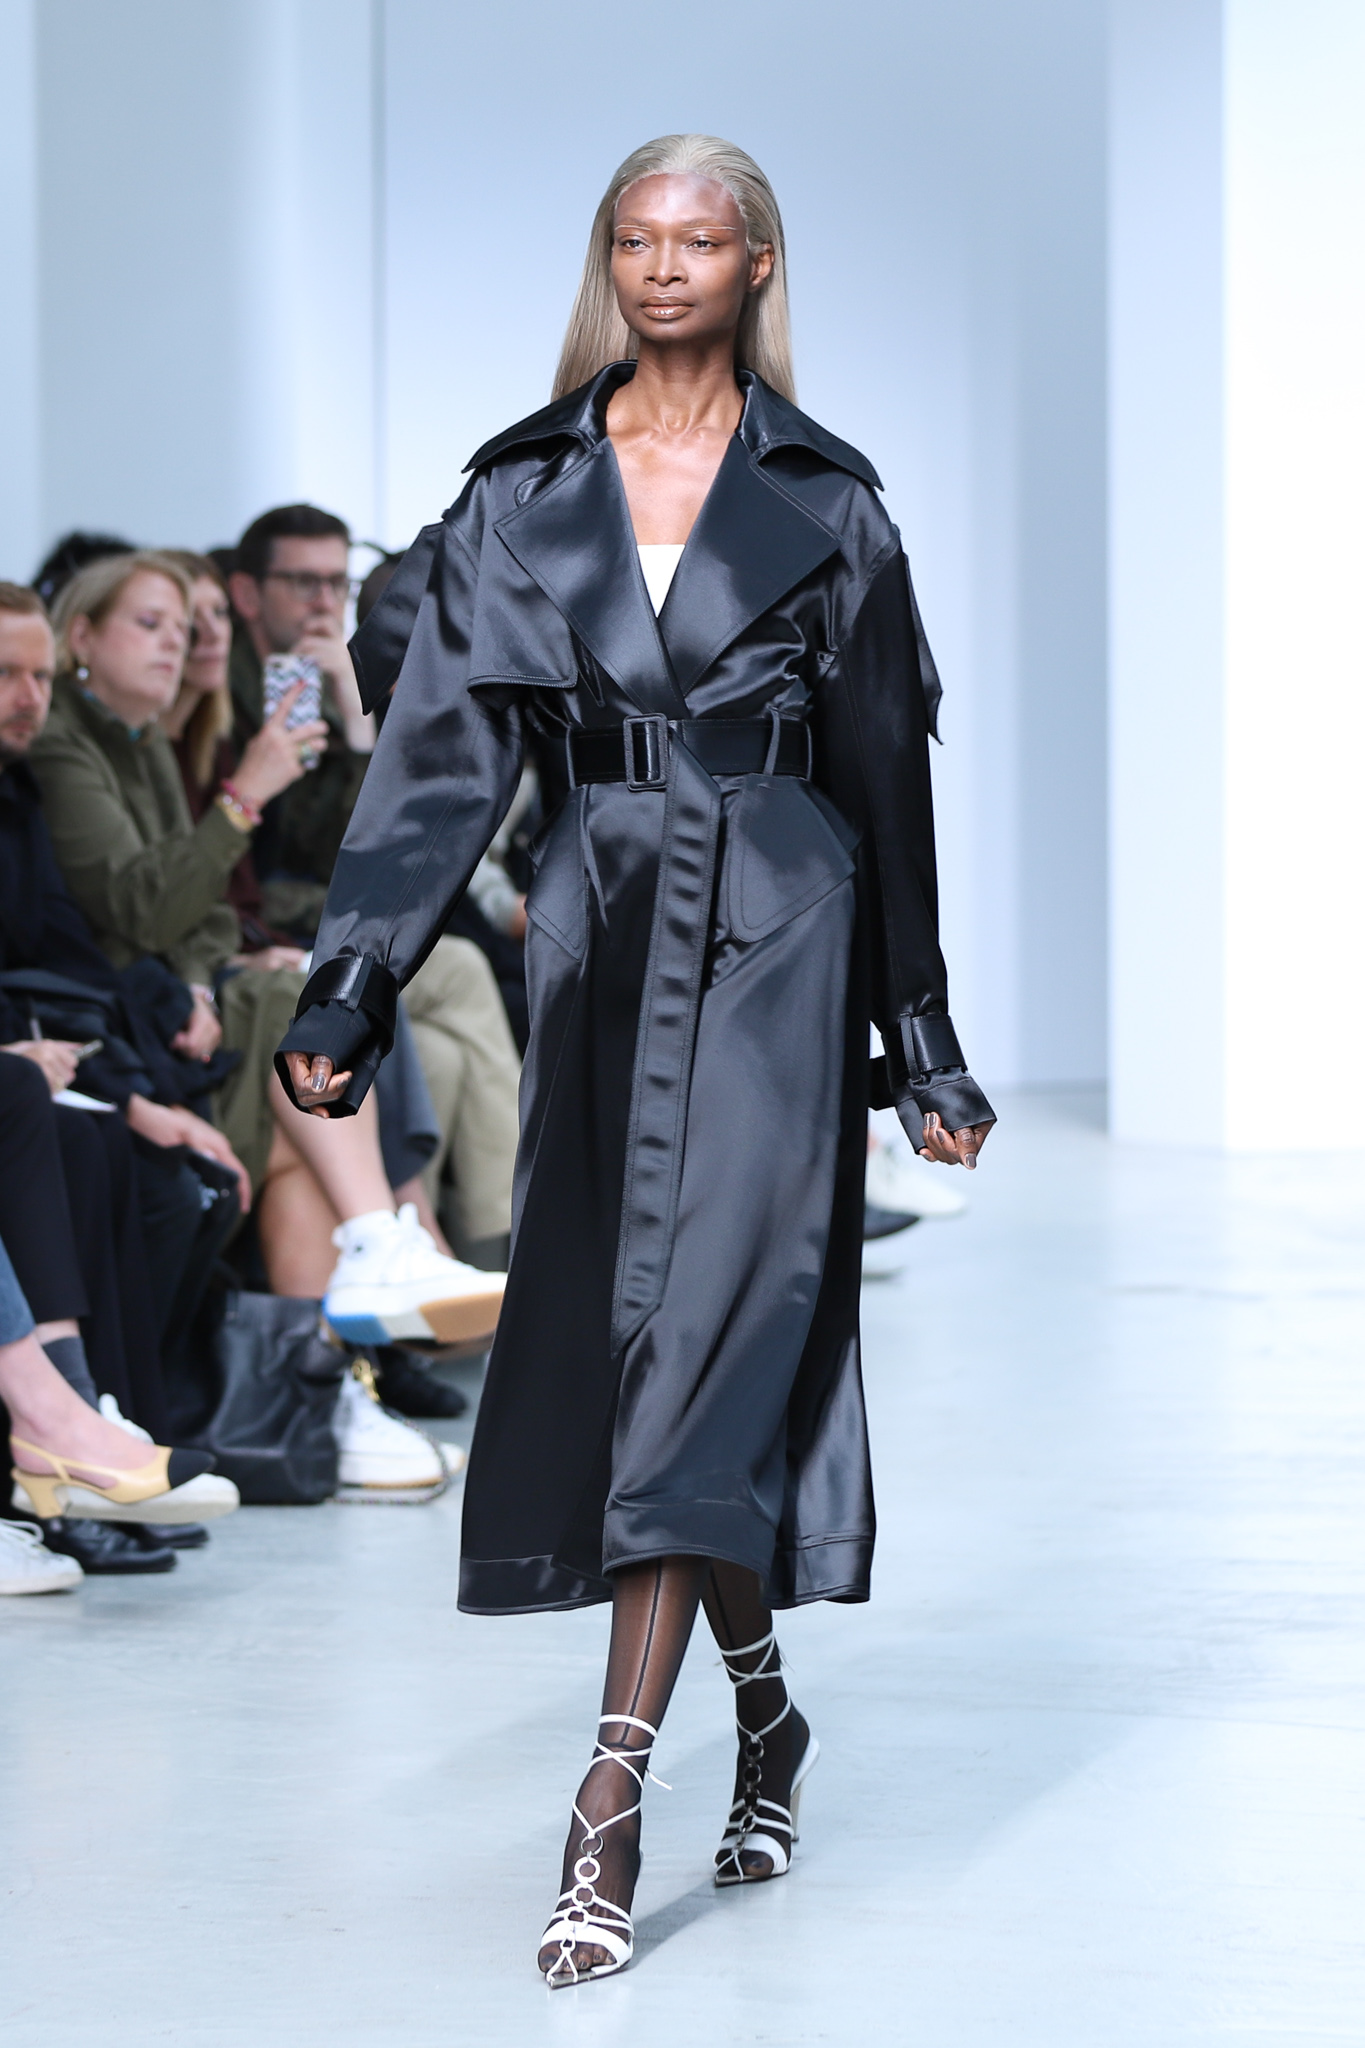 Mugler Runway Oversized Trench Coat in Black Tie Up Heels in White Spring 20 RTW